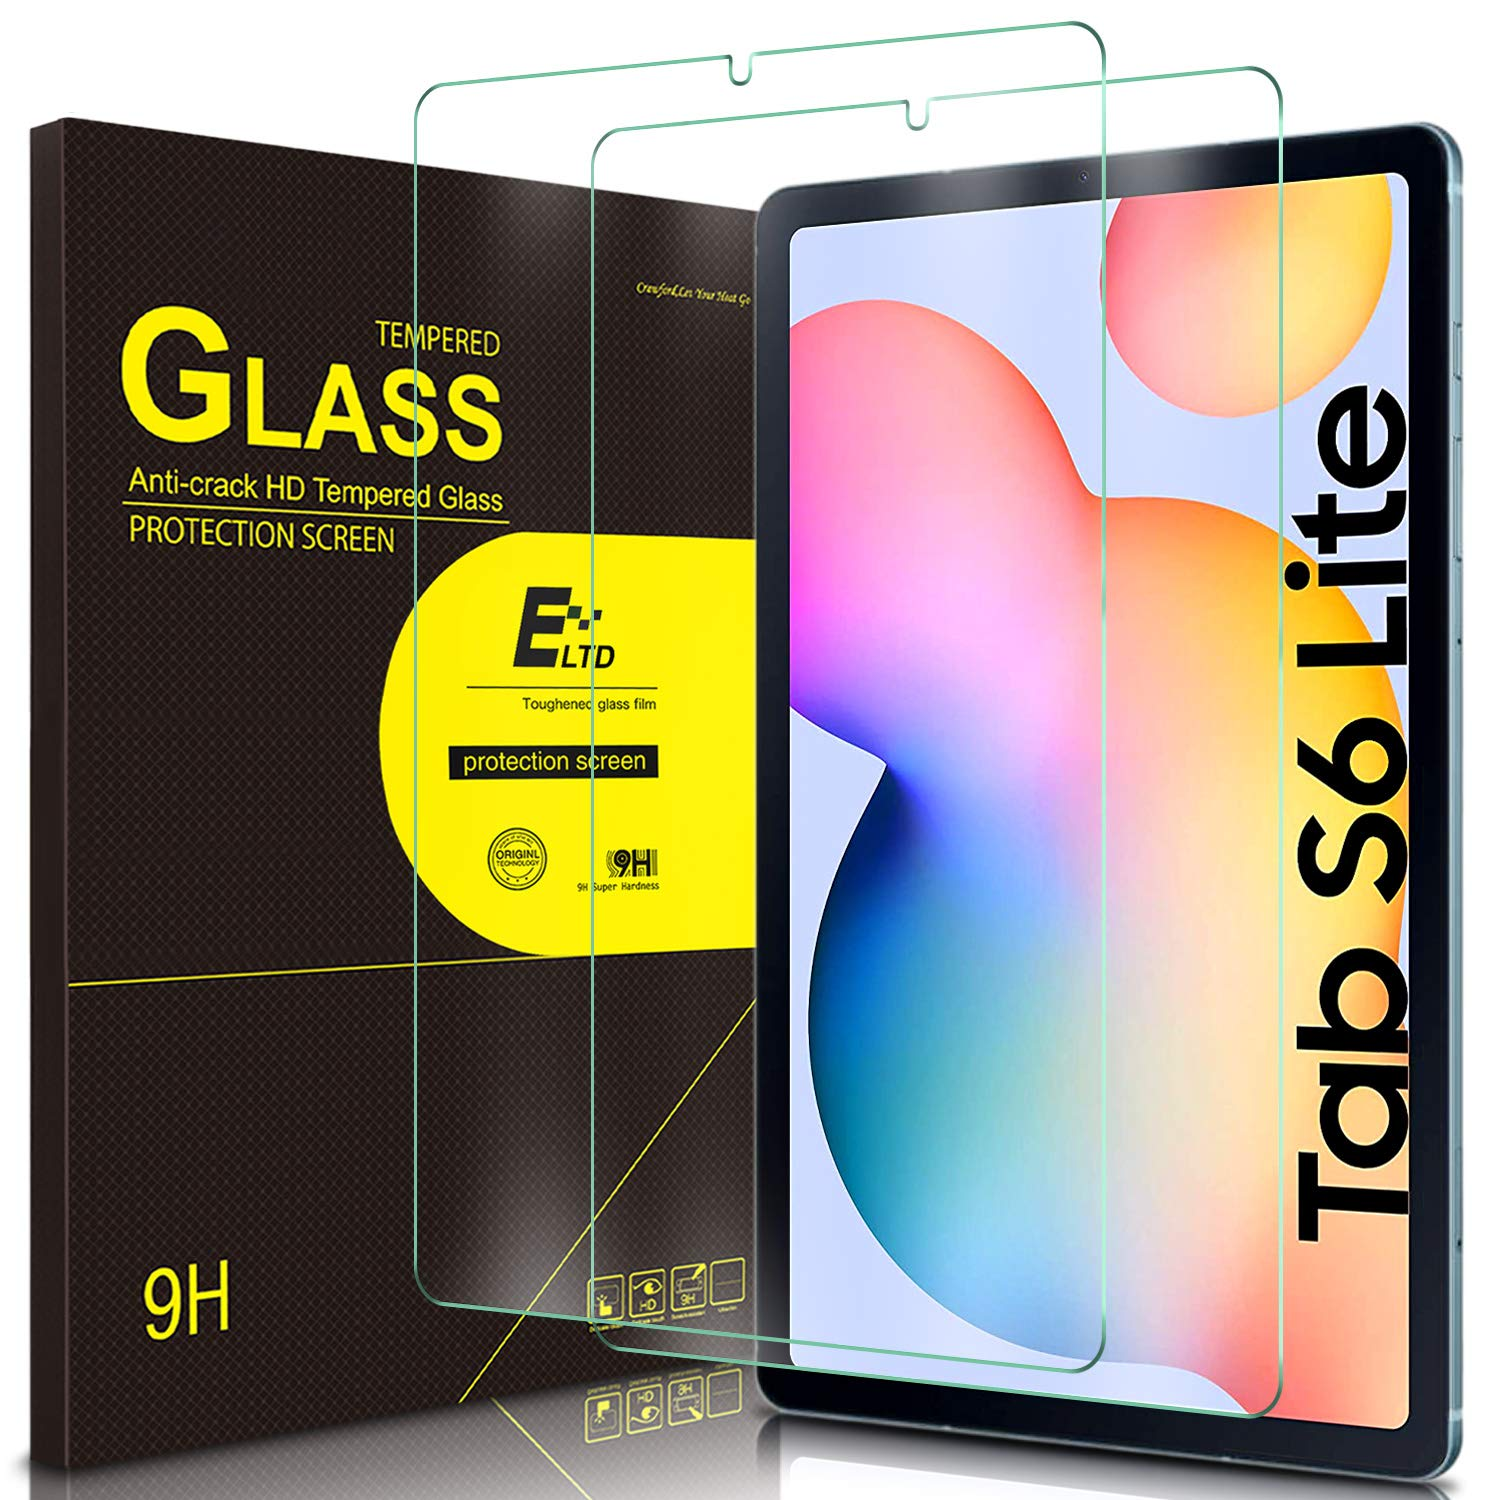 ELTD (2Pack) Screen Protector for Samsung Galaxy Tab S6 lite 10.4 inch HD Tempered Glass/Easy Installation Screen Protector for The New Samsung Galaxy Tab S6 lite 10.4 inch 2020 Release Tablet